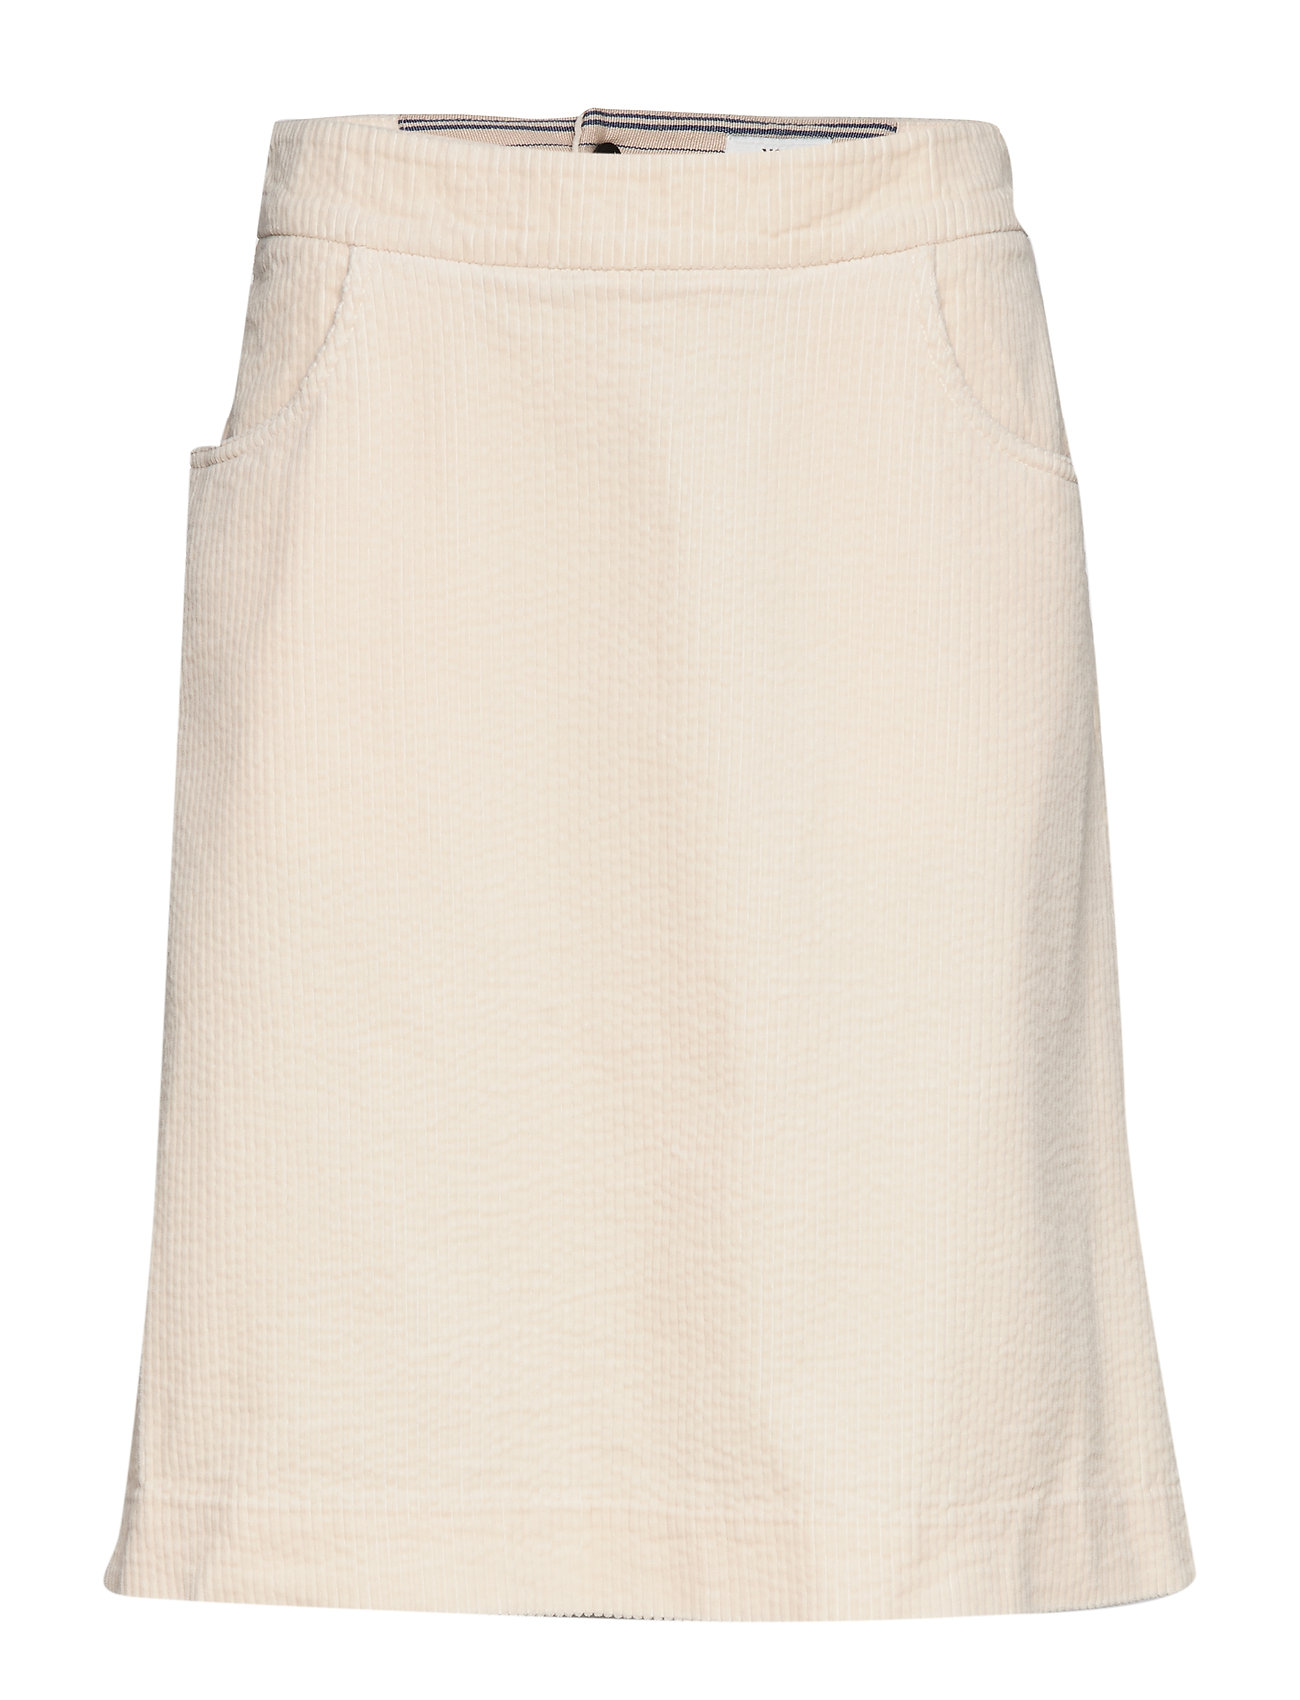 Noa Noa Skirt - BIRCH